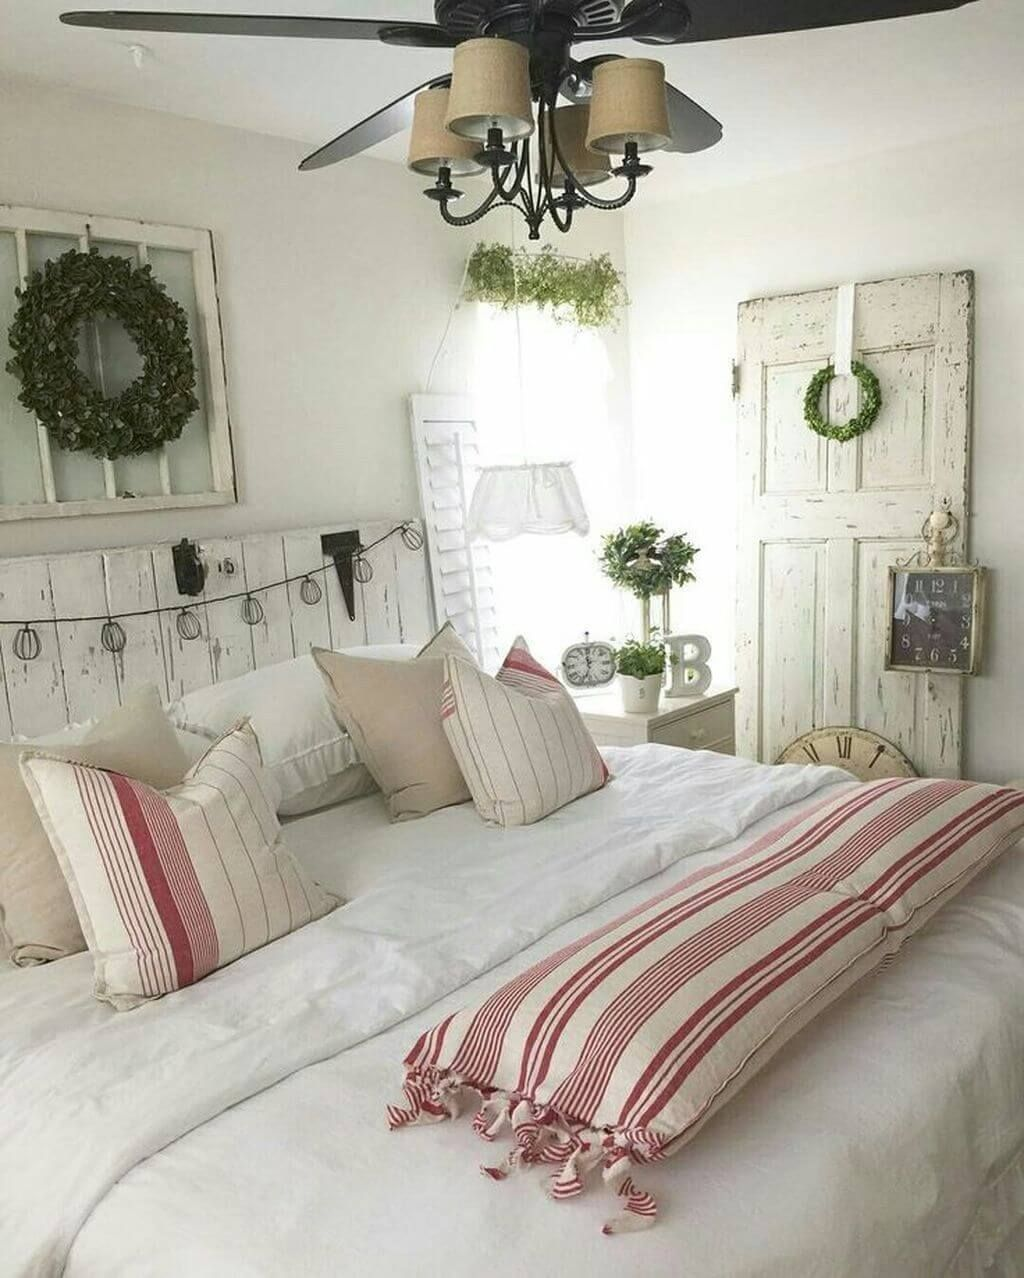 30 French Country Bedroom Design And Decor Ideas For A Unique And Relaxing Space In 2020 Tranquil Bedroom Farmhouse Chic Bedroom Home Decor Bedroom